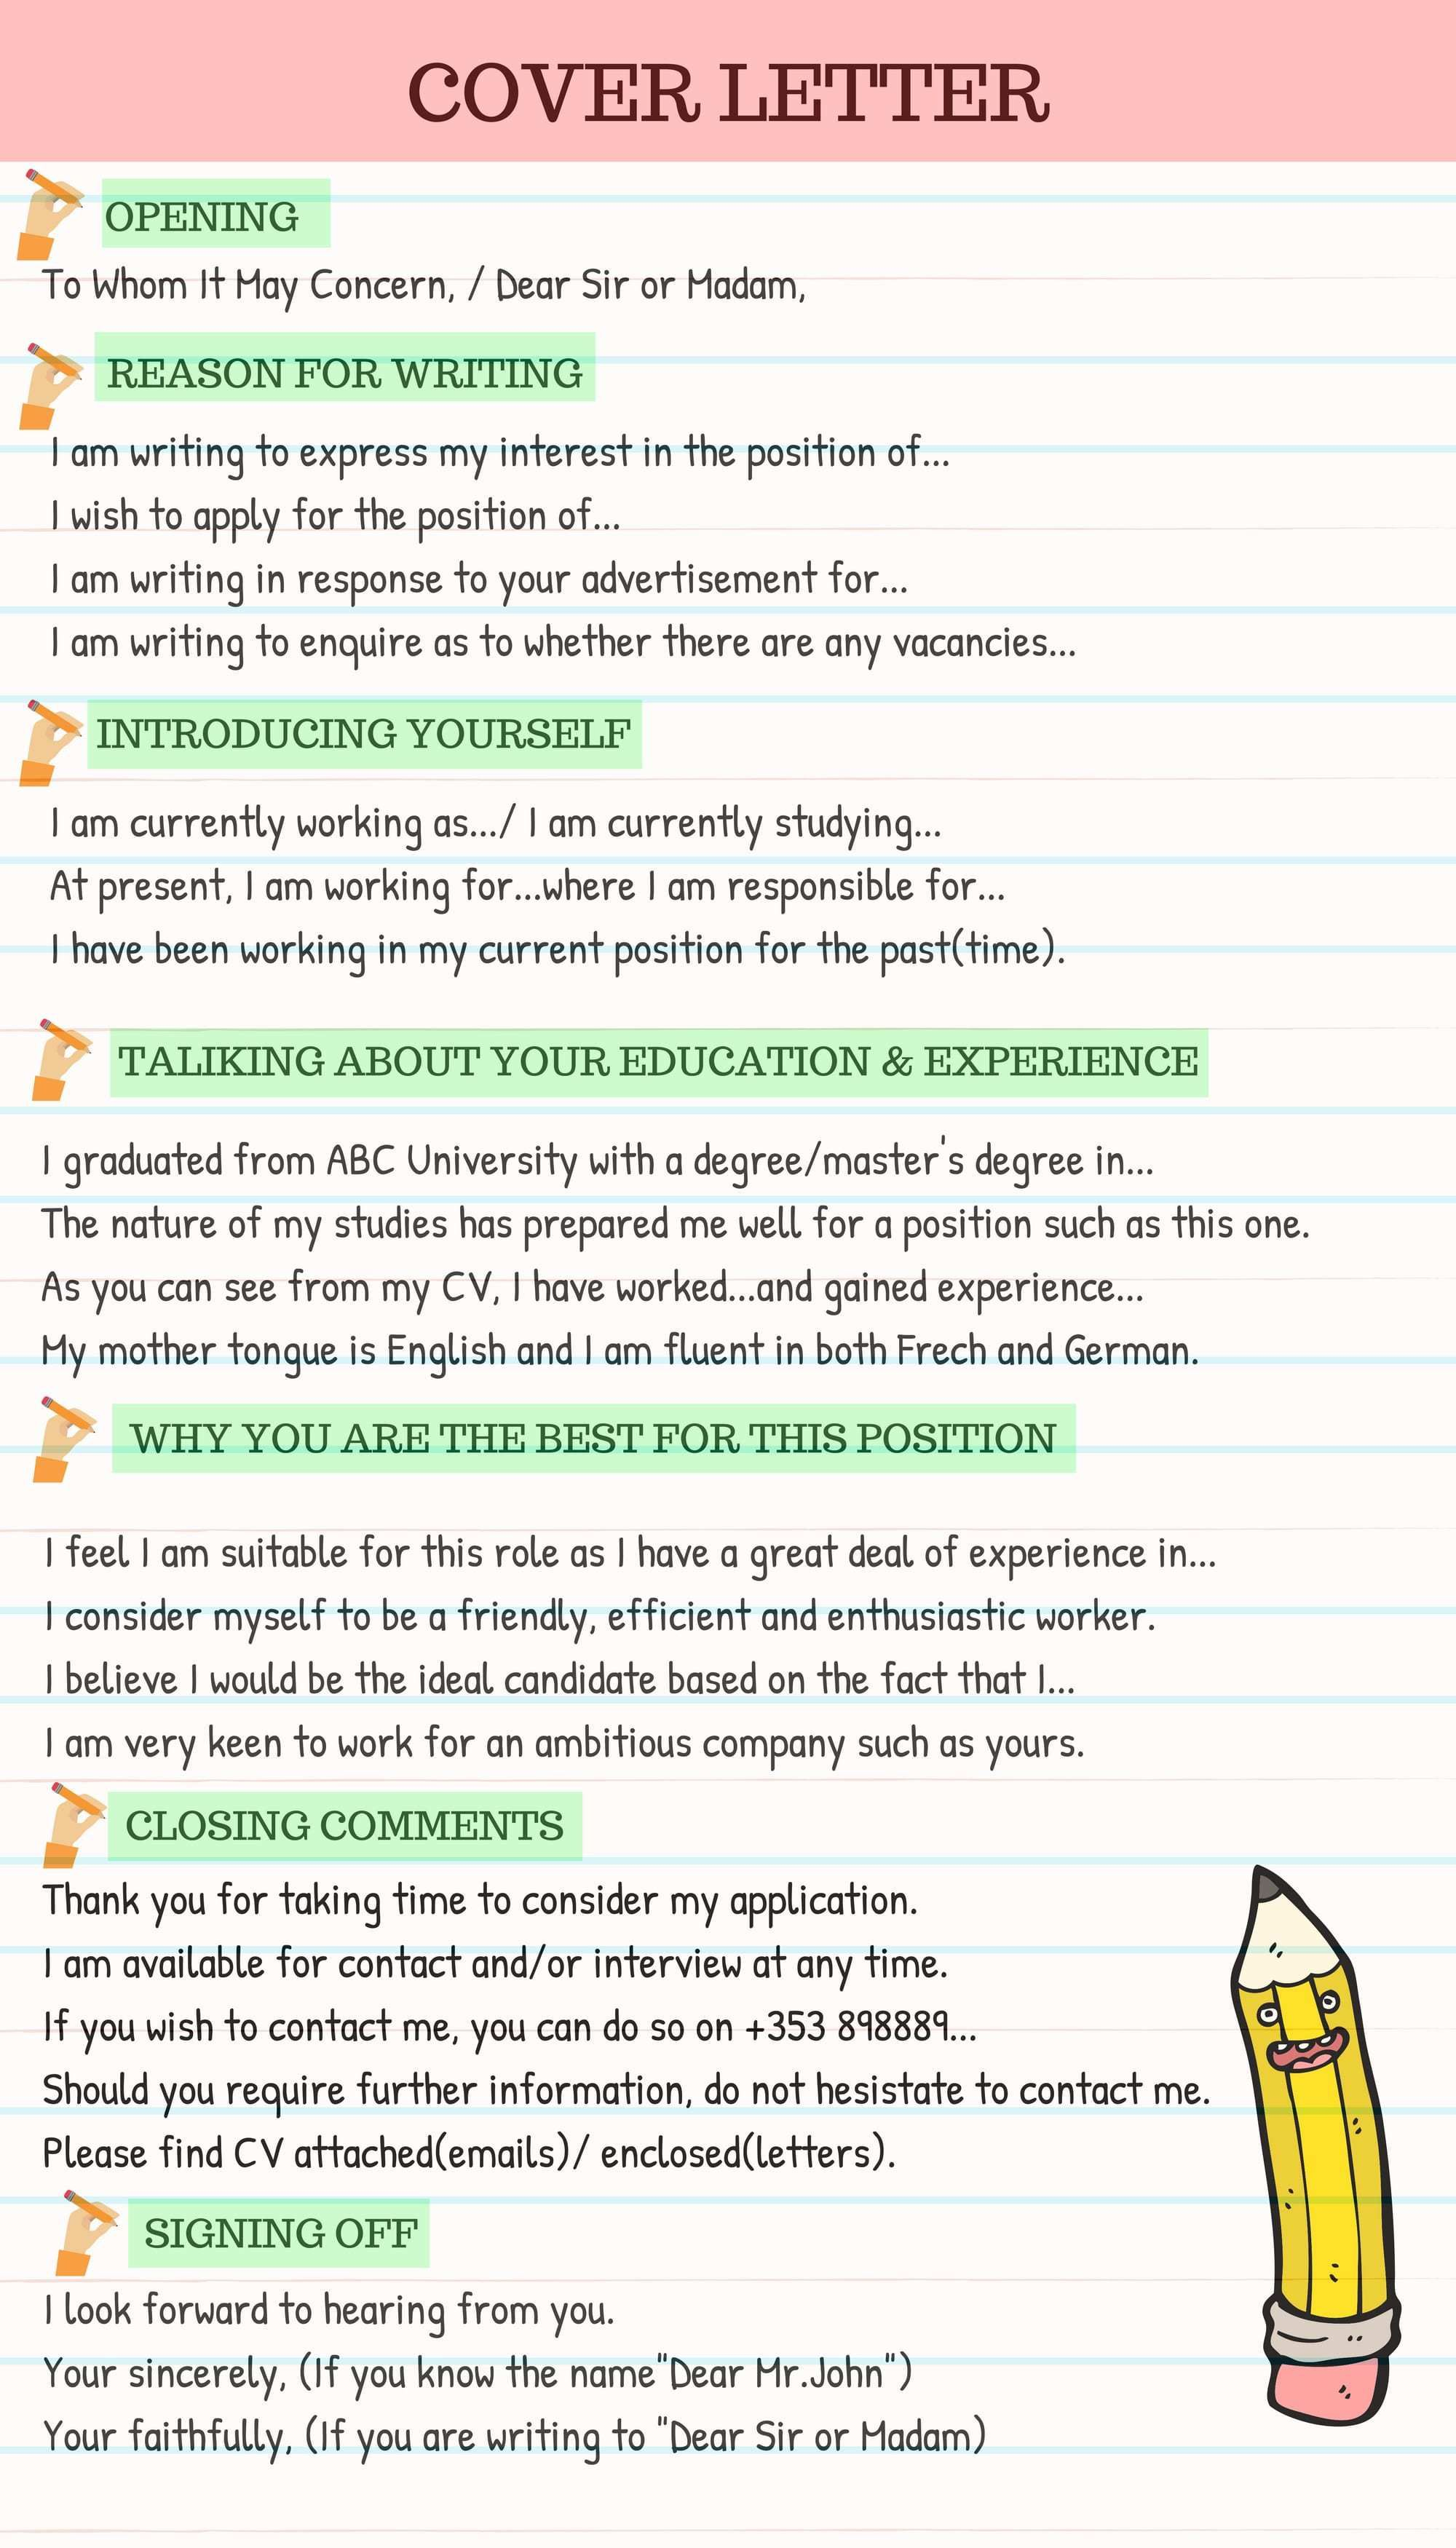 Font For Cover Letter How To Write A Successful Cover Letter  English Language And